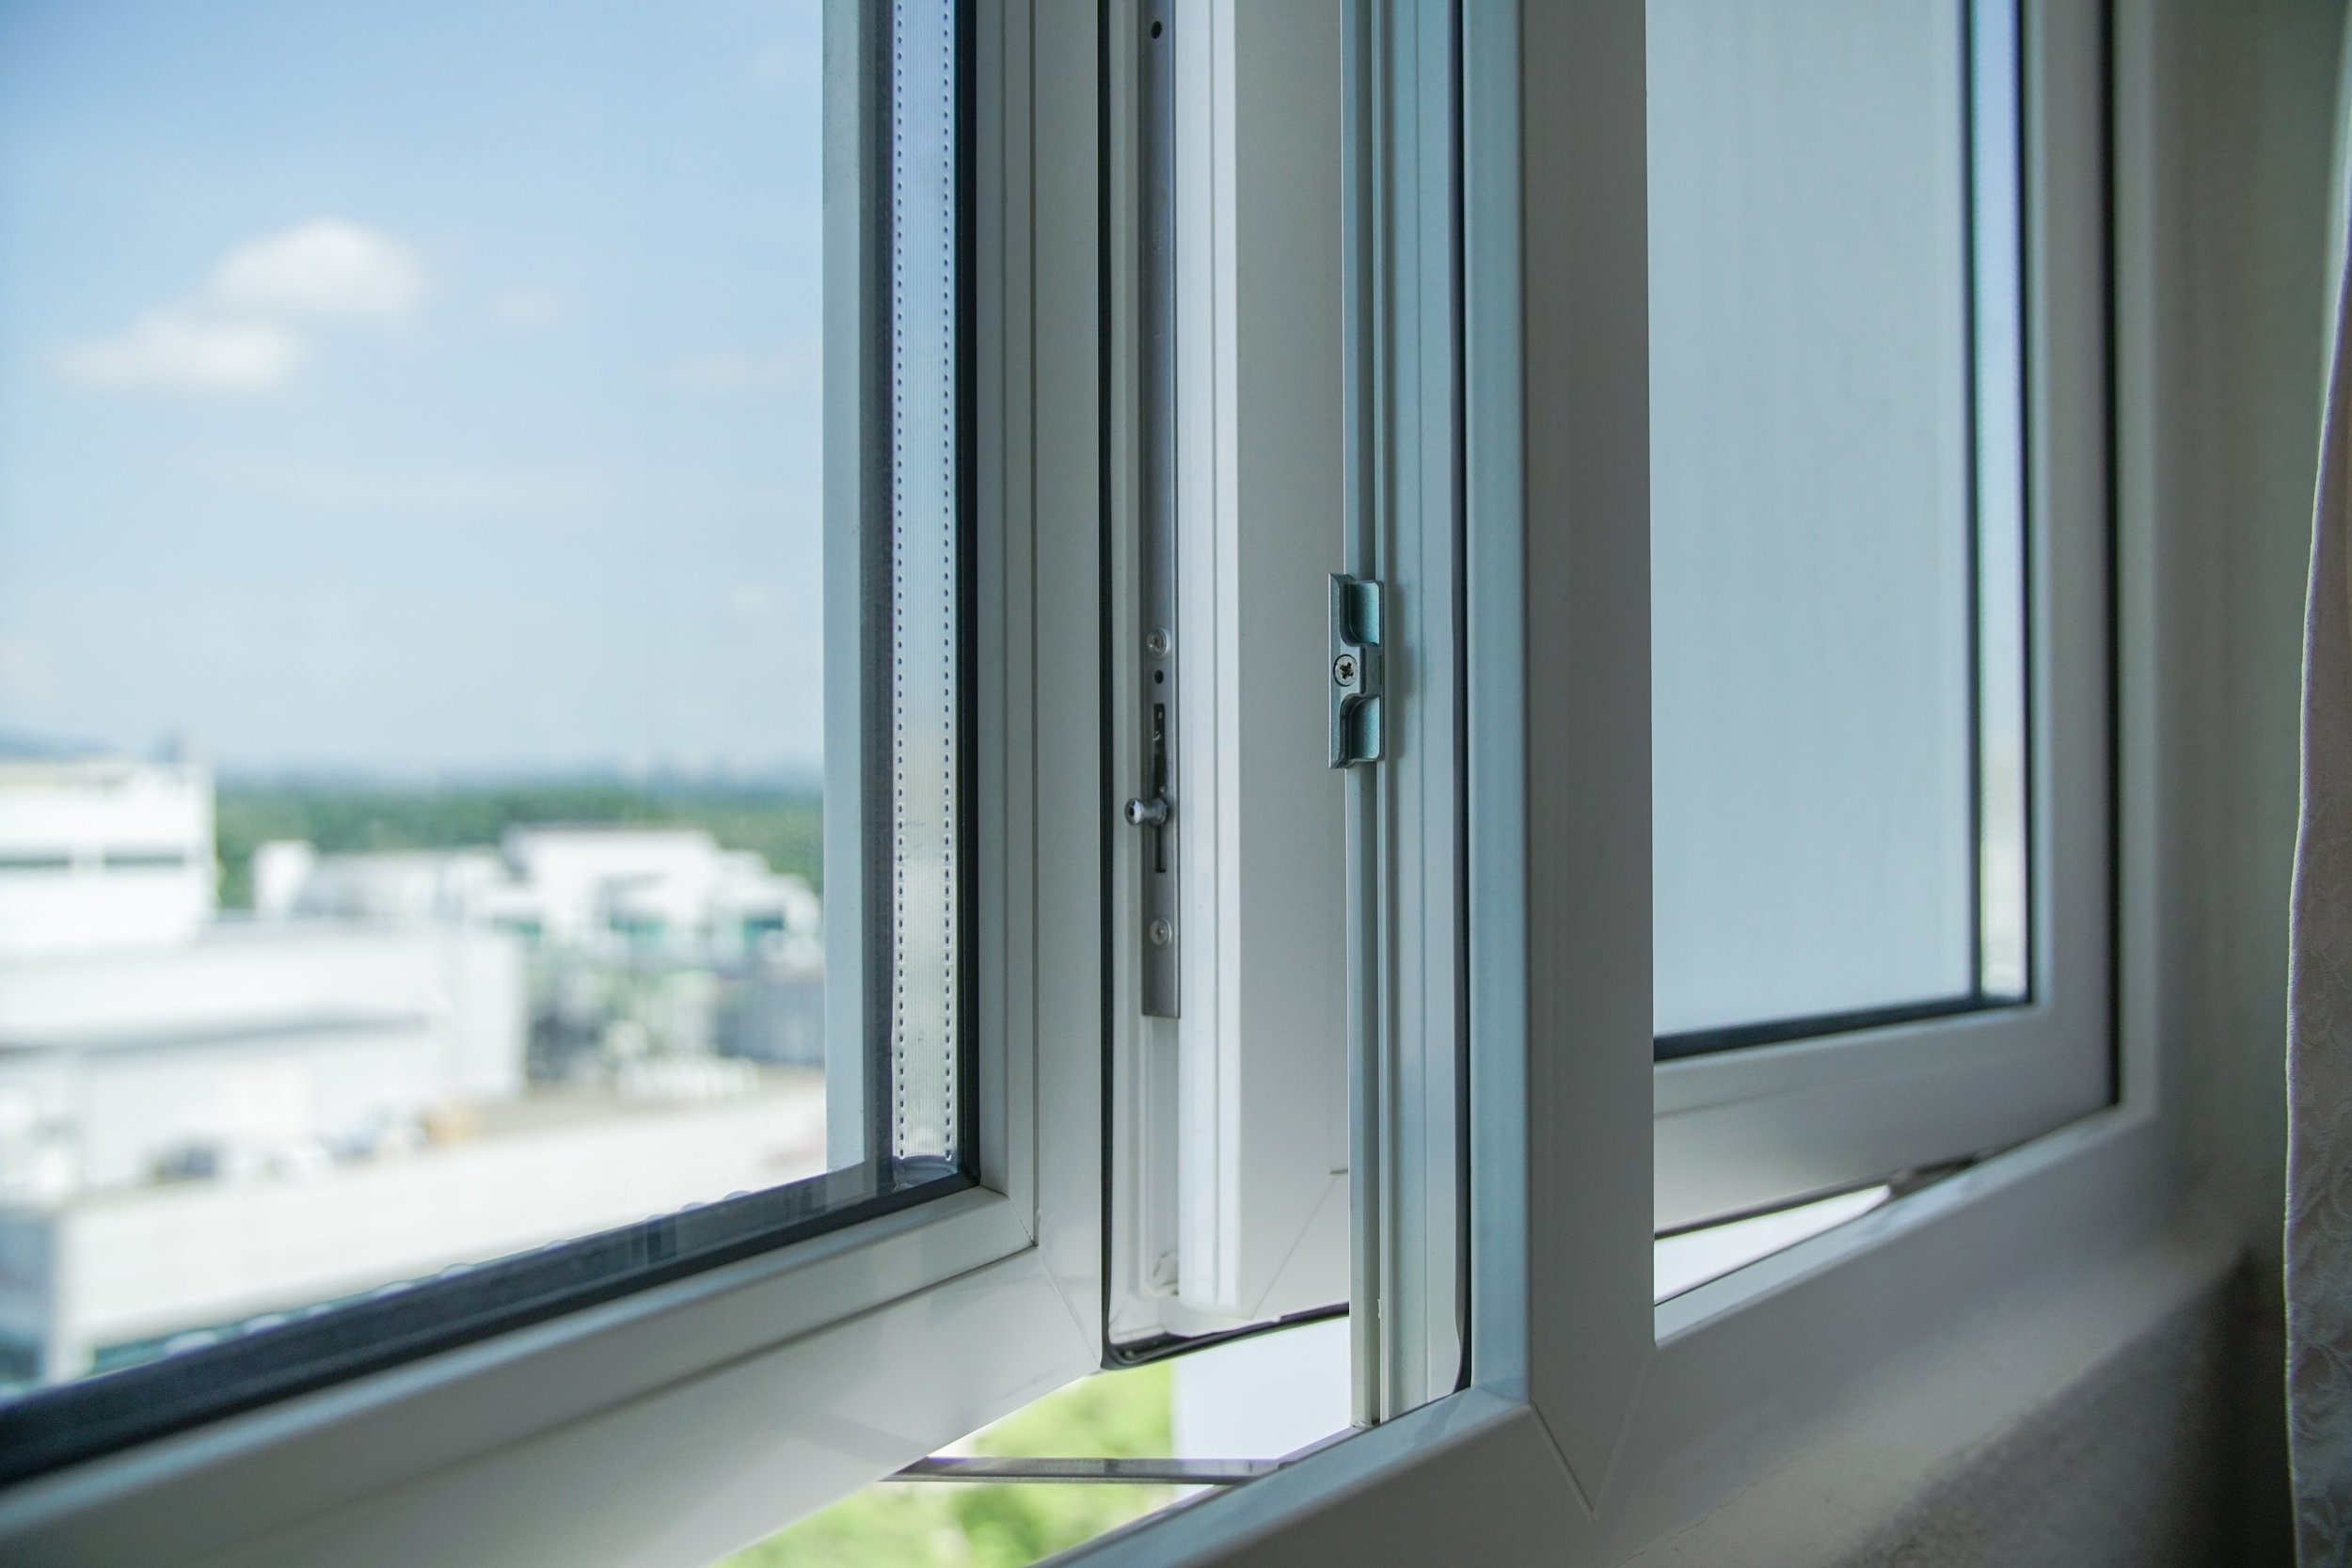 soundproof windows-21.jpg